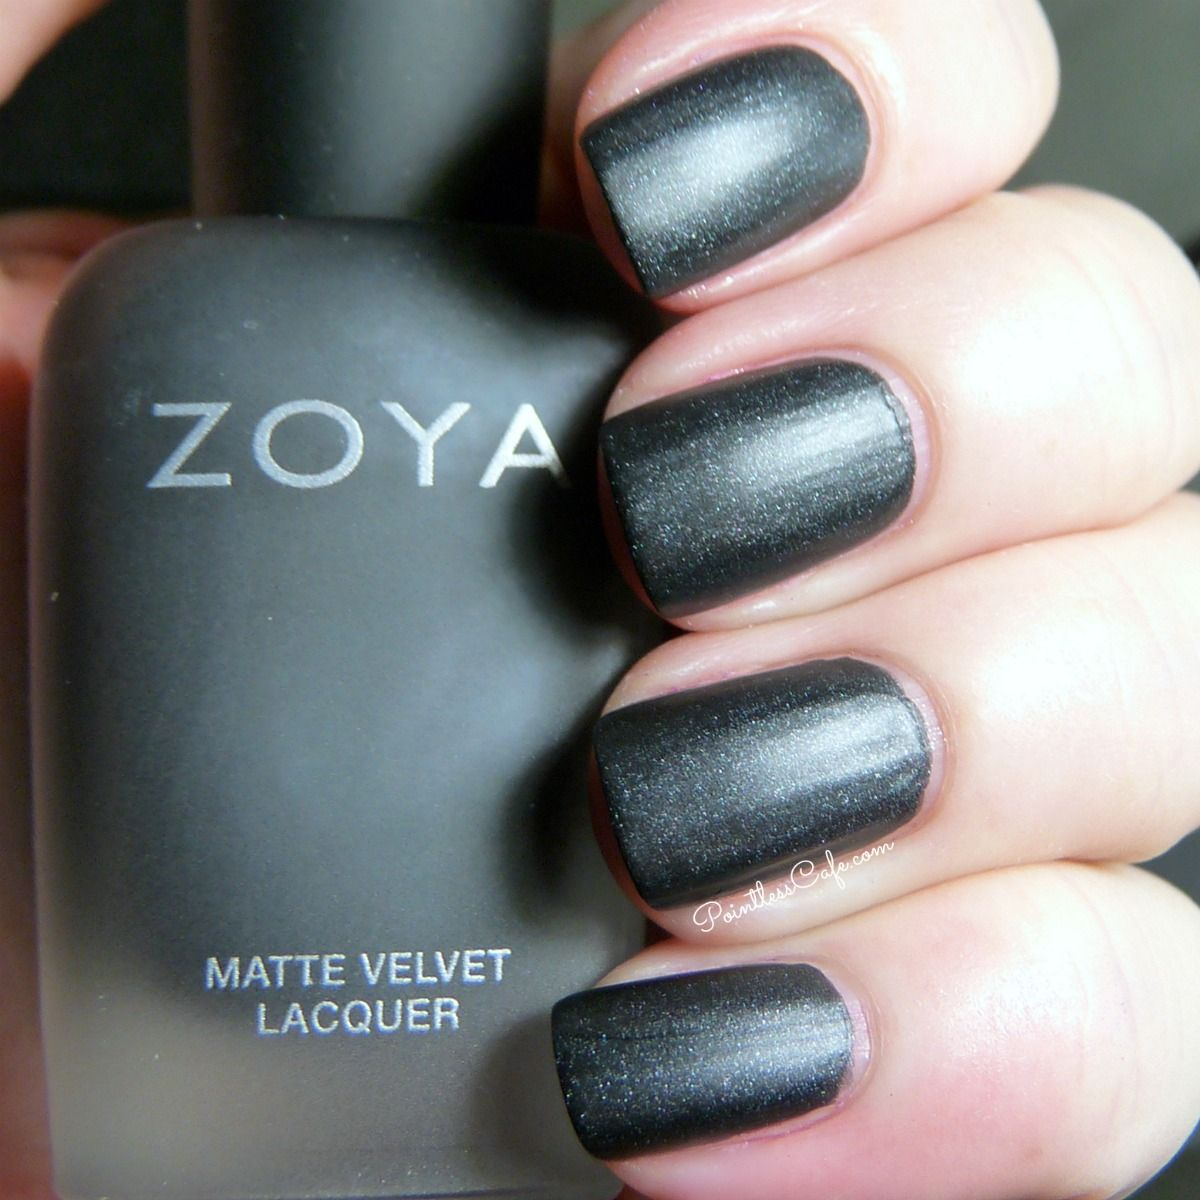 Zoya Dovima is a matte black polish with silver and a smattering of blue shimmer.